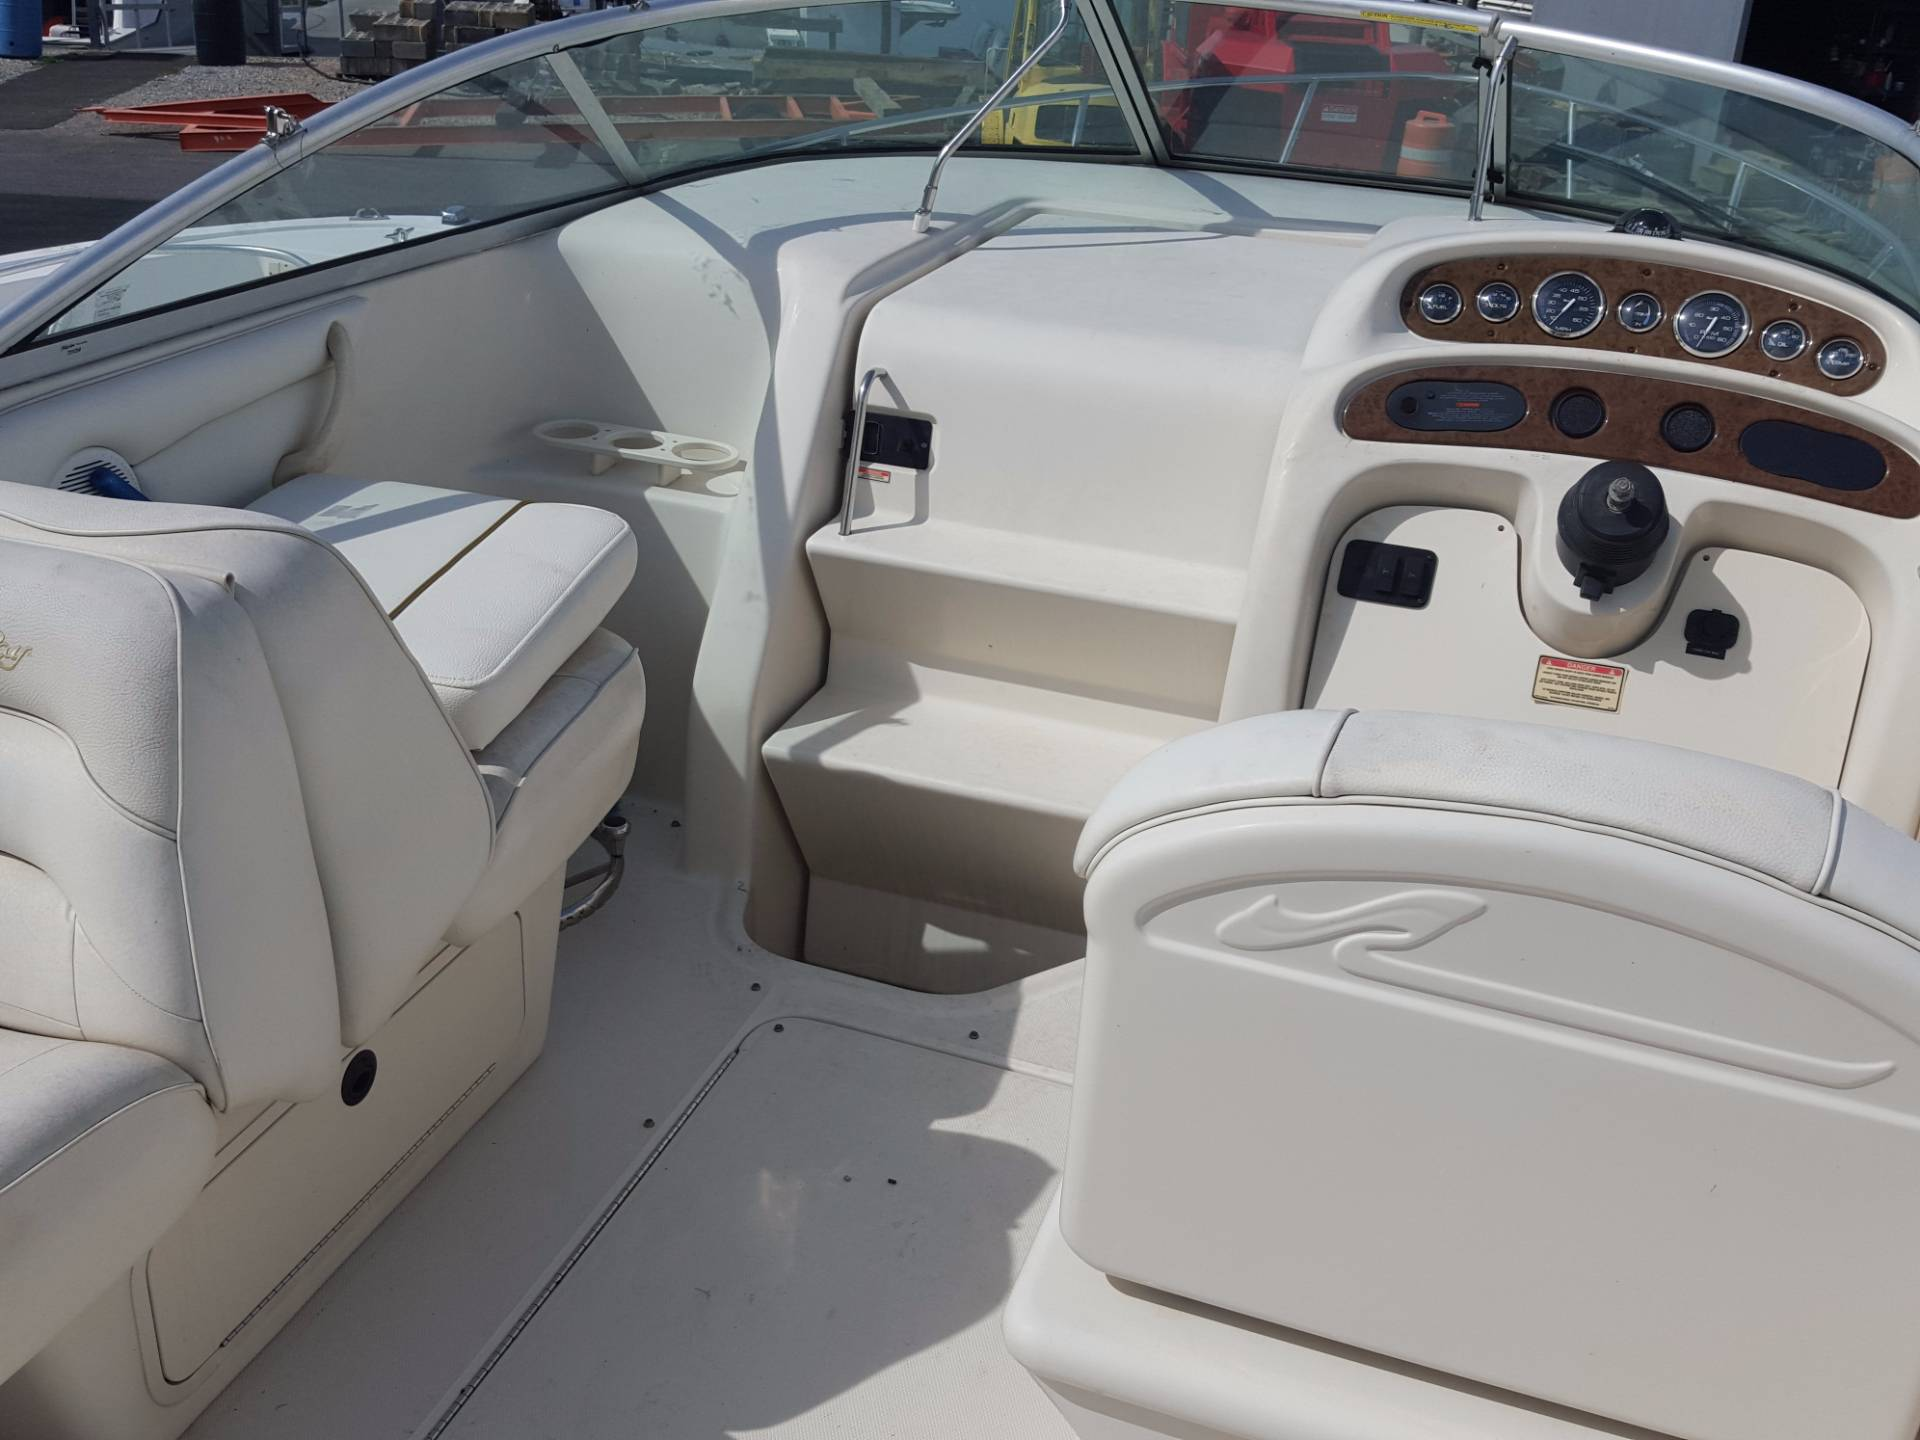 2001 Sea Ray 245 Weekender in Oceanside, New York